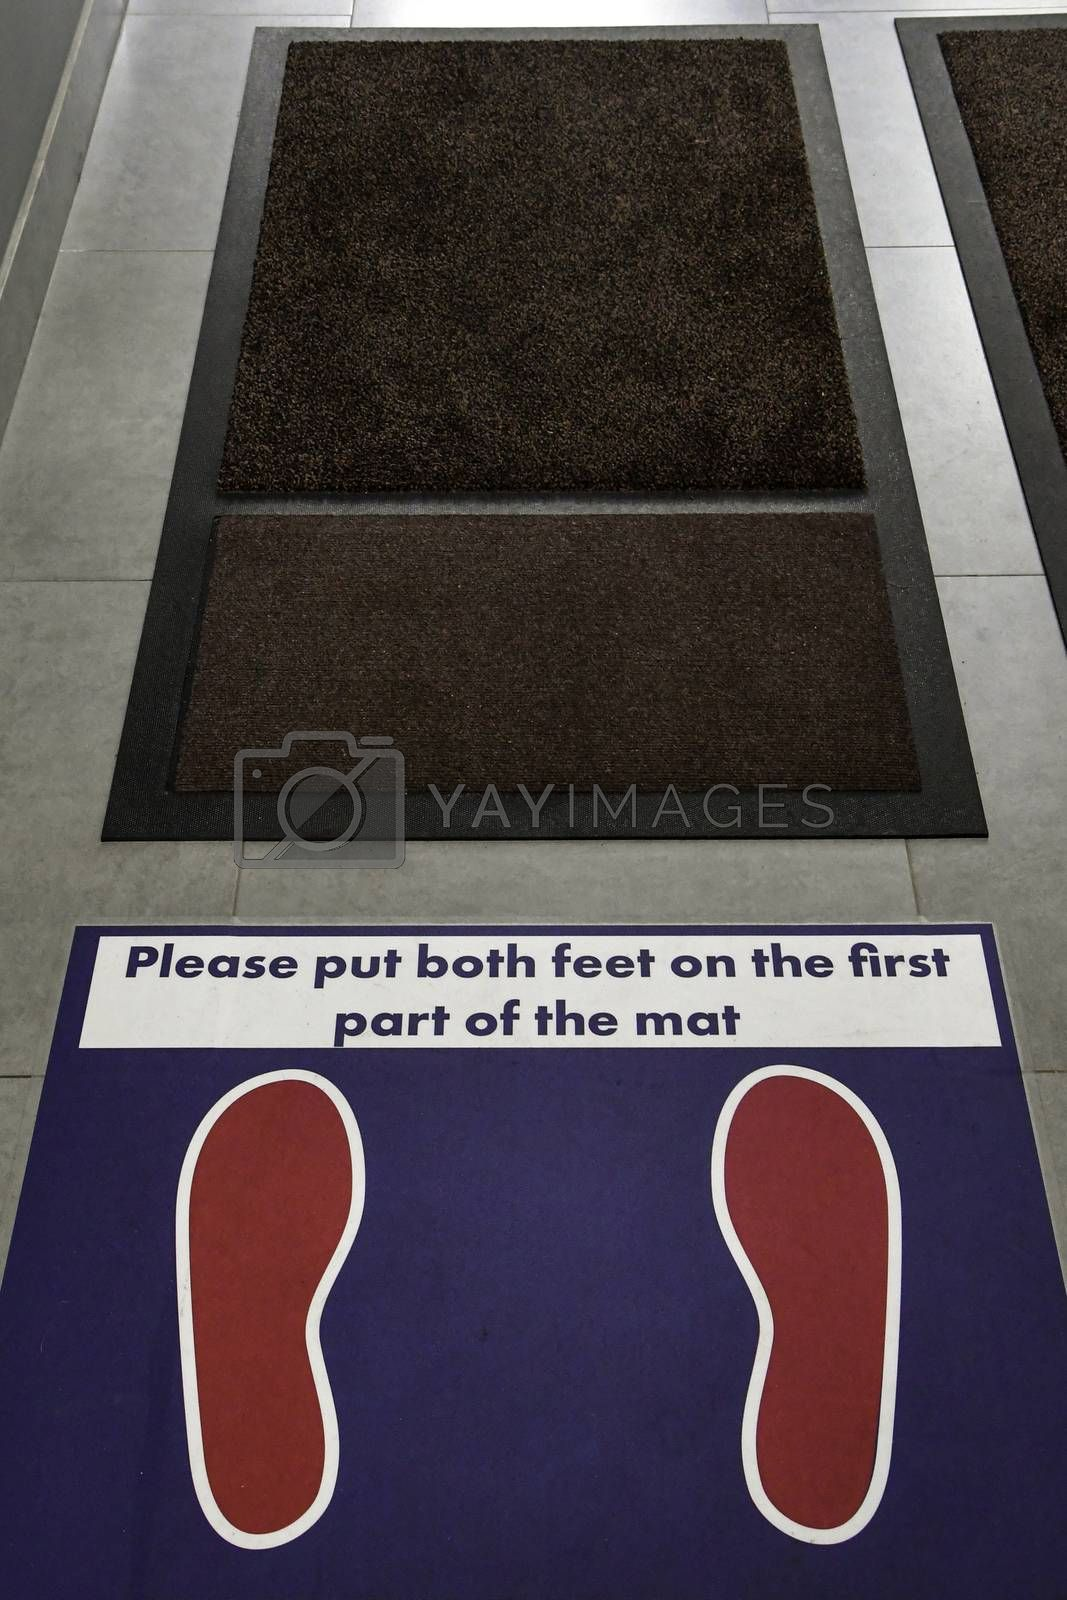 Floor markings and instructions for shoe sanitizing mats in an office building during the covid 19 pandemic.